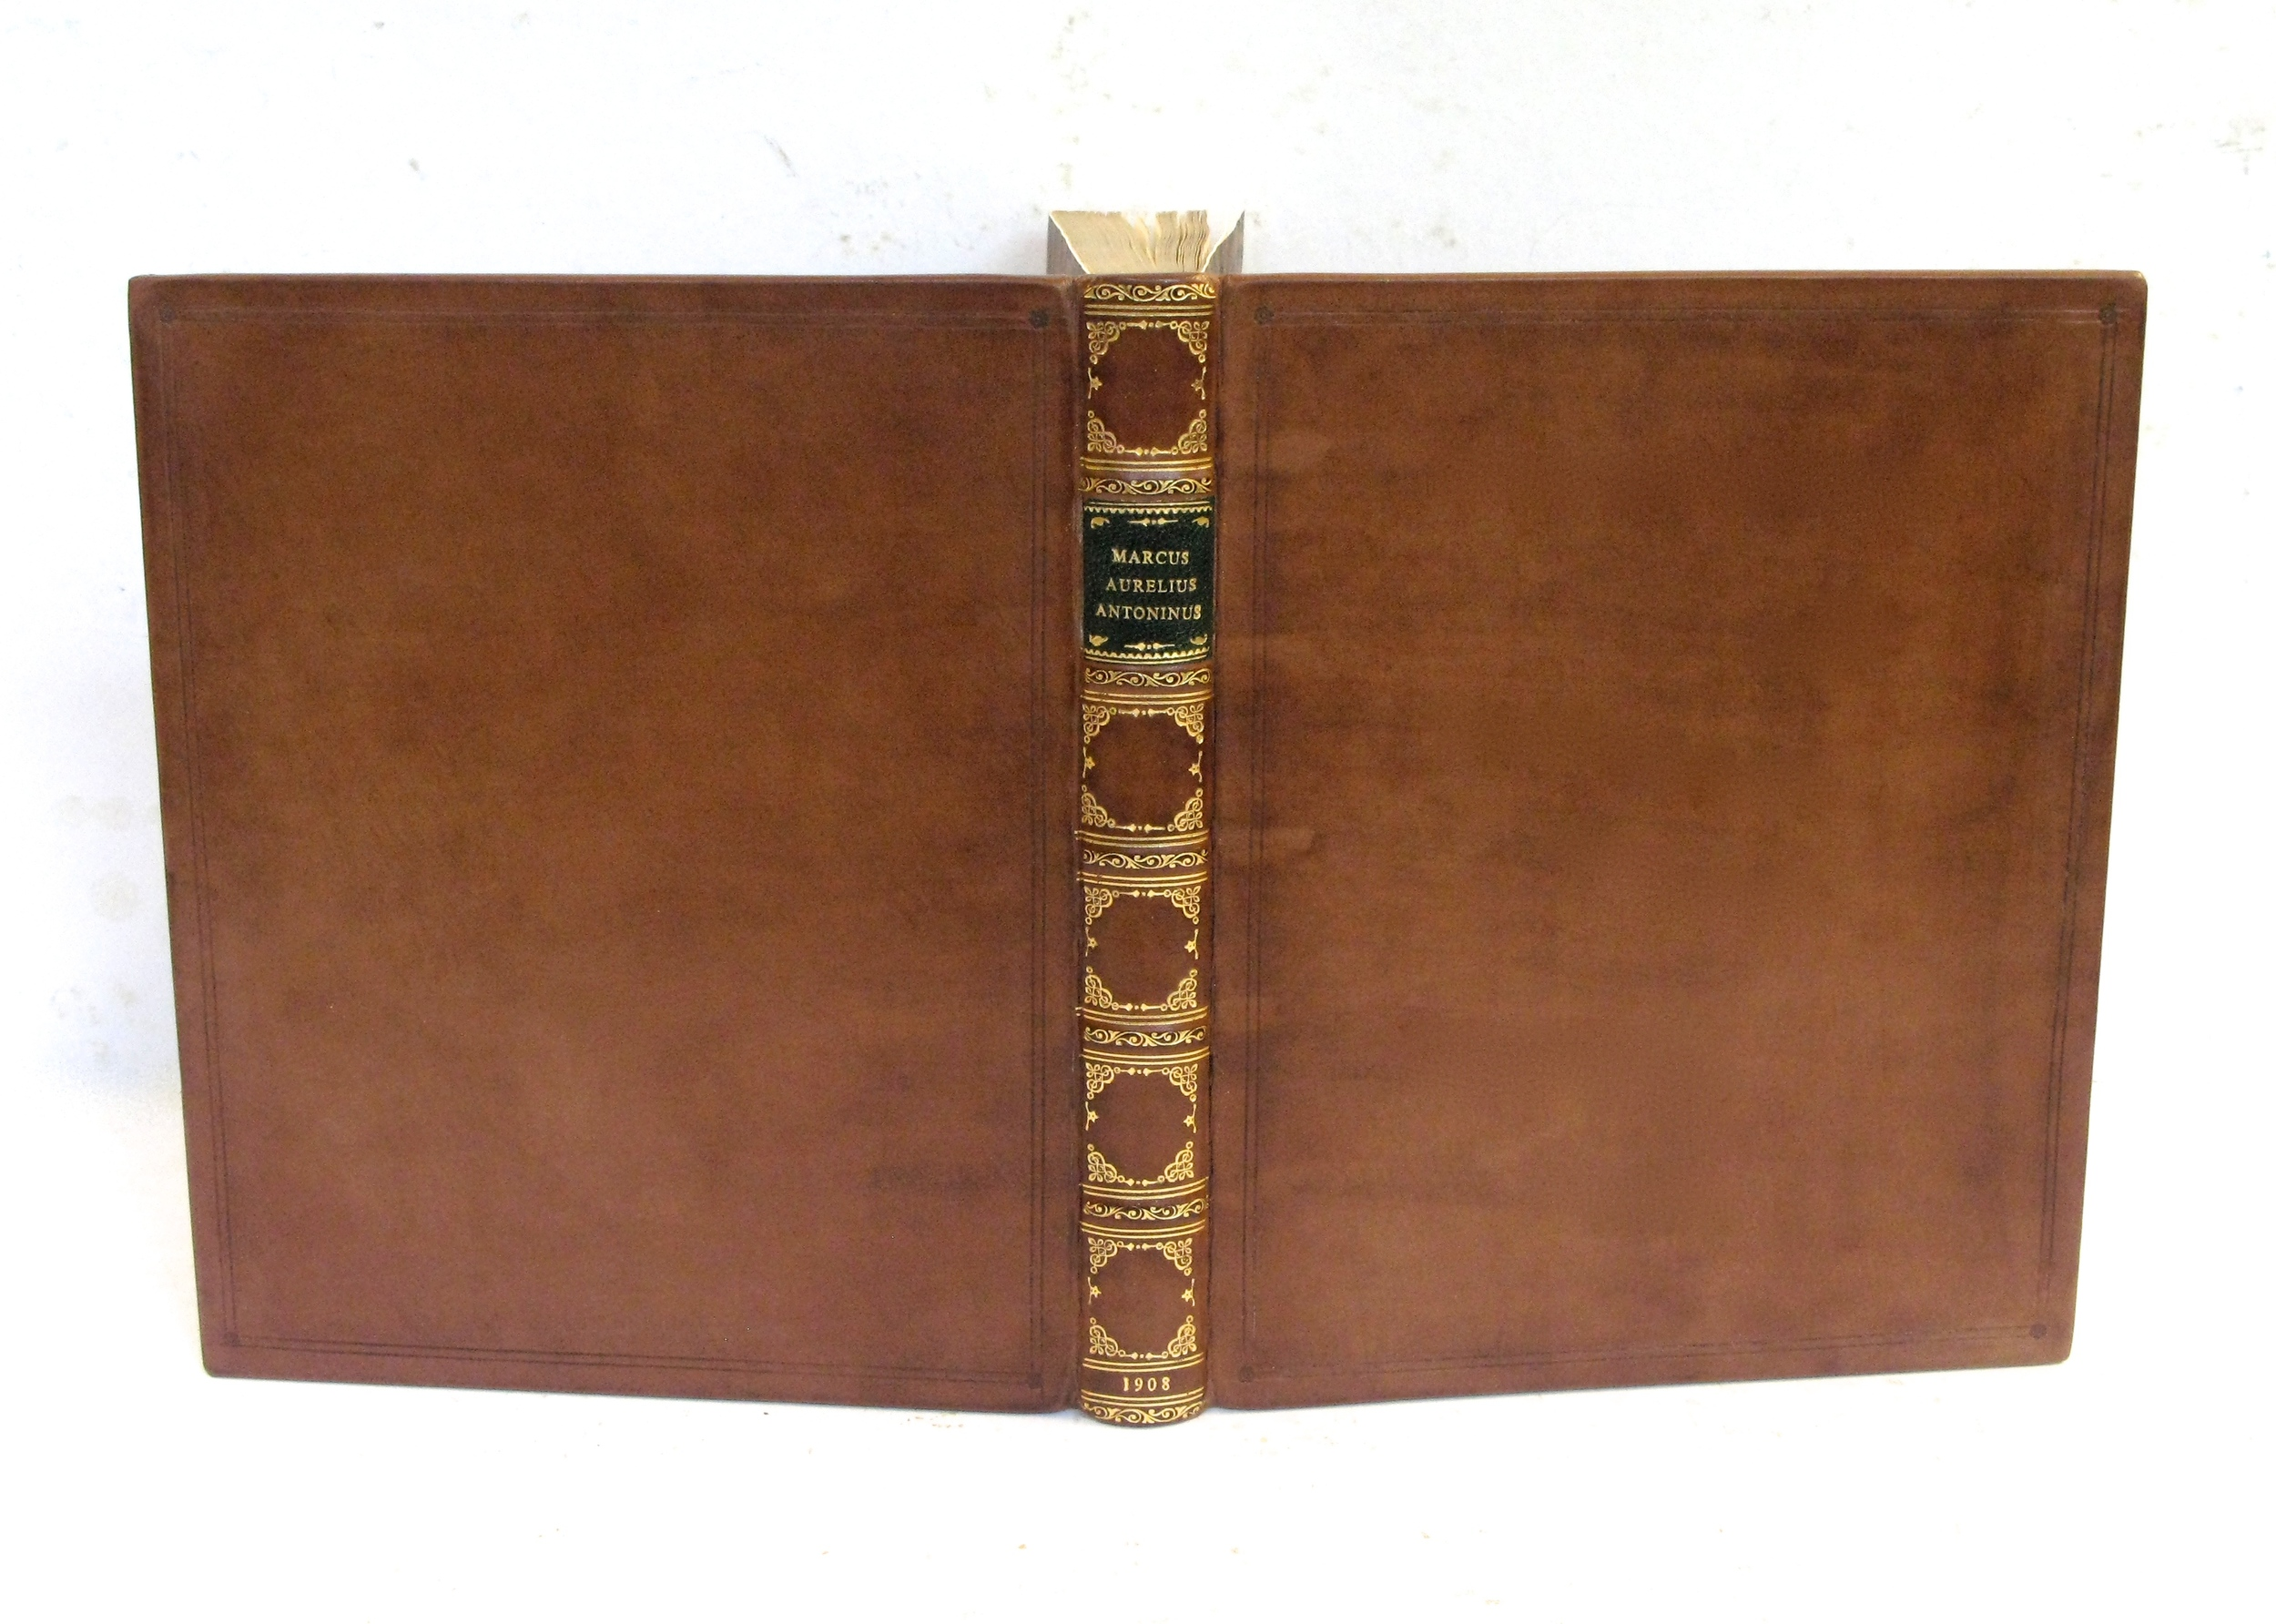 Copy of New Binding in Antique Style: polished calf